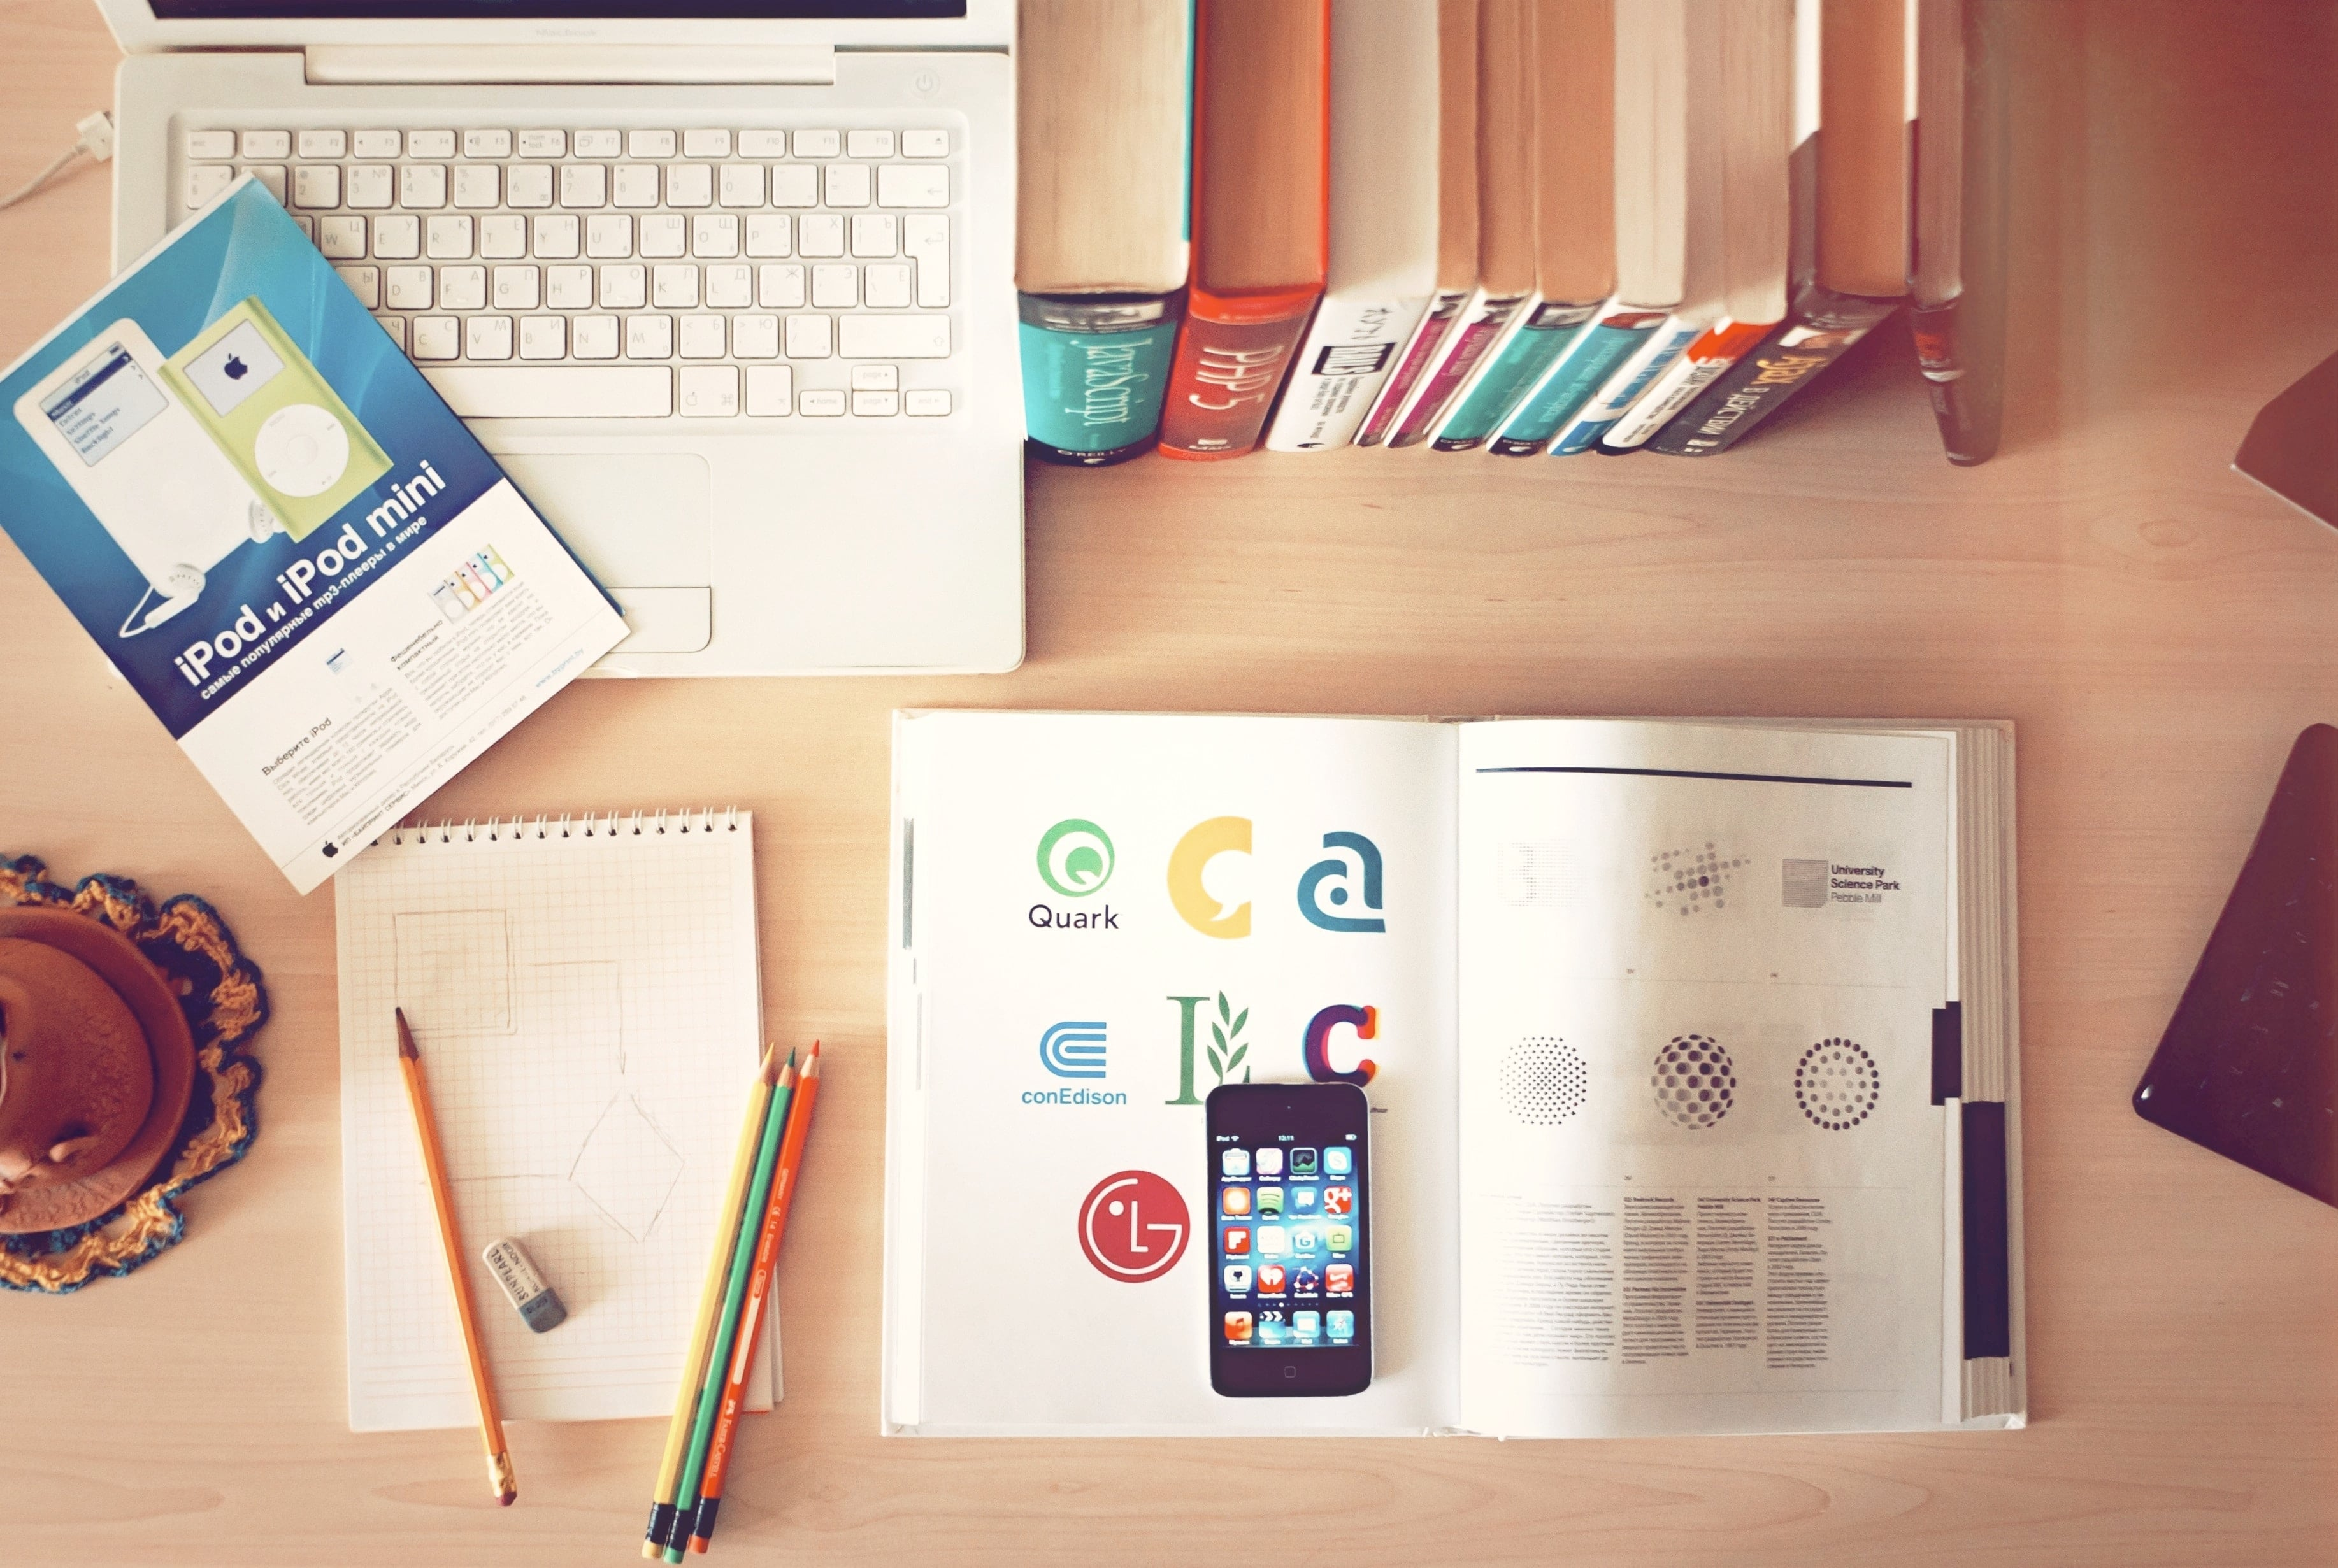 A graphic designer's essentials on a desk for a multimedia course task